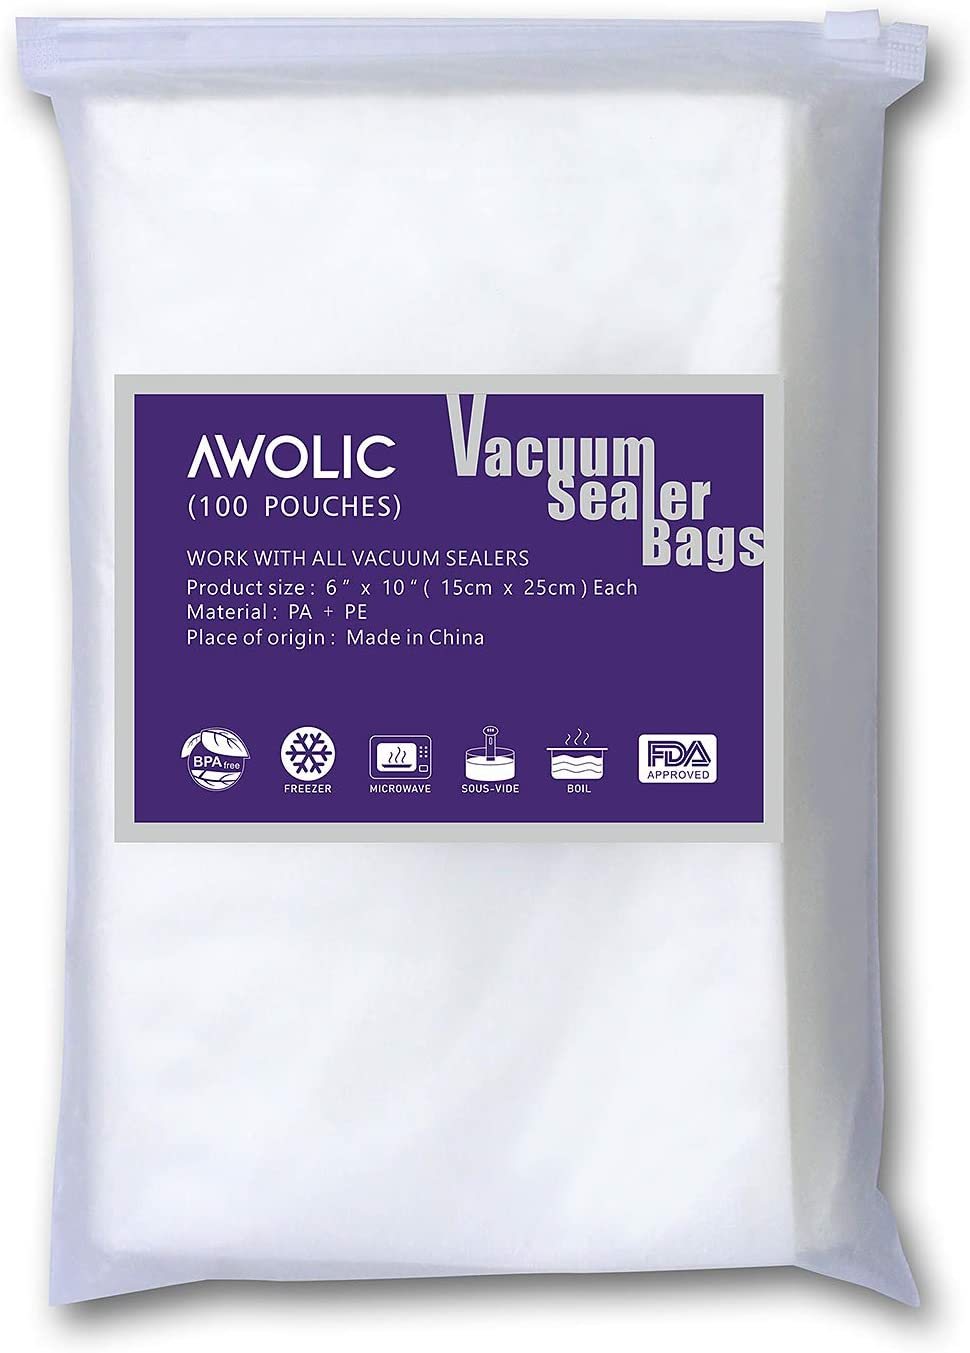 """AWOLIC Vacuum Sealer Bags,100 Pint Size 6""""x10"""",BPA Free,Commercial Grade,Heavy Duty,Sous Vide, Food Saver Bags Work with All Clamp External Vacuum System."""